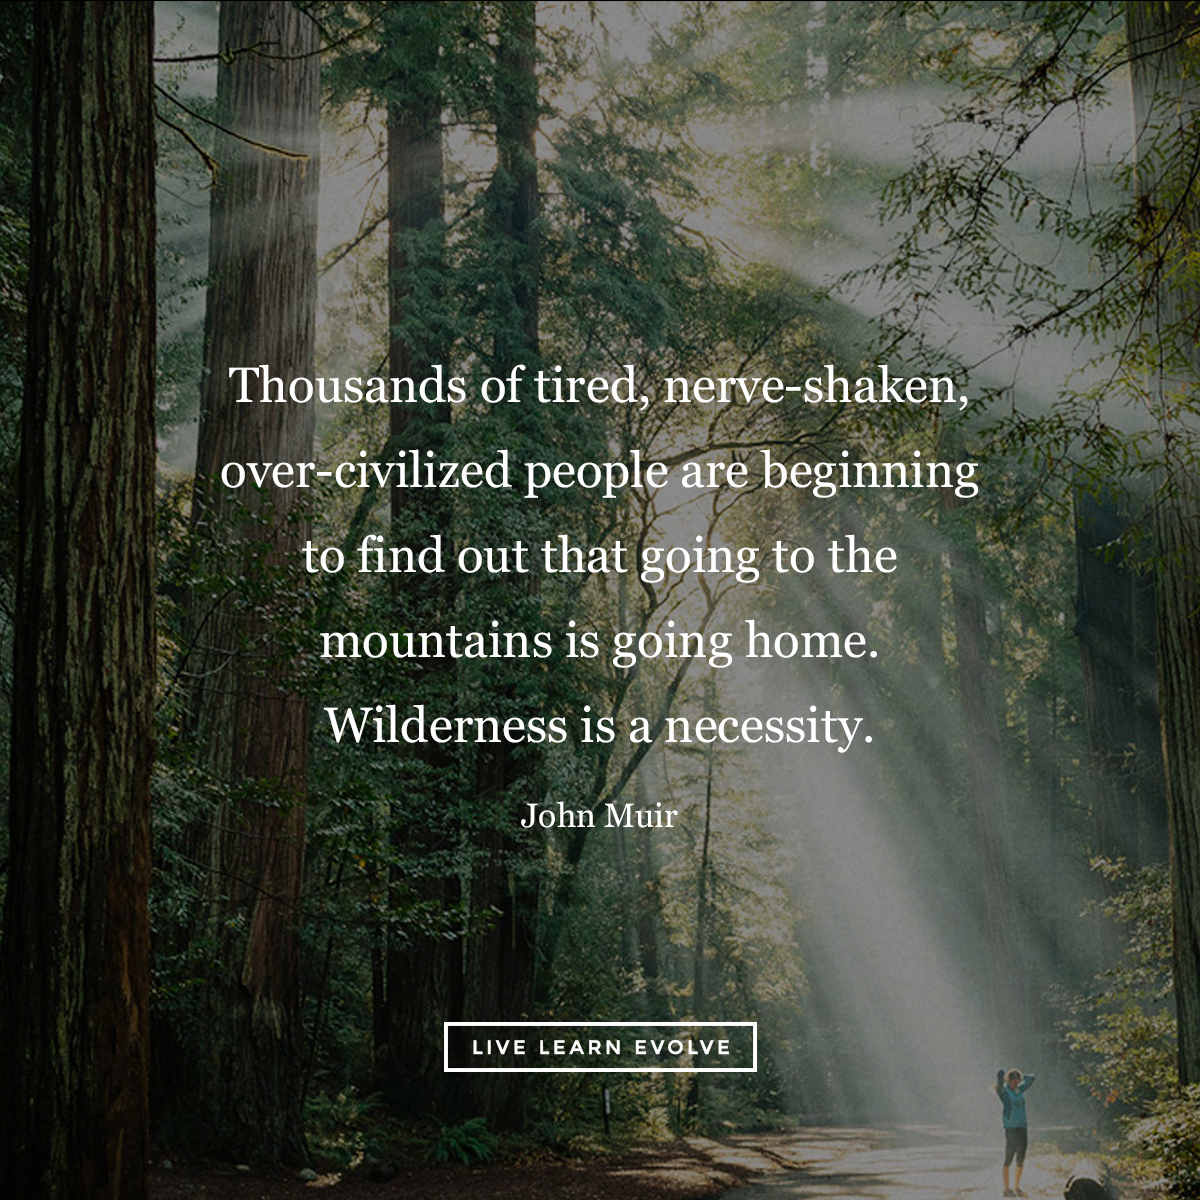 Microdosing Nature: The Science behind the Healing Powers of the Natural World  John_muir_wilderness_forest_bathing